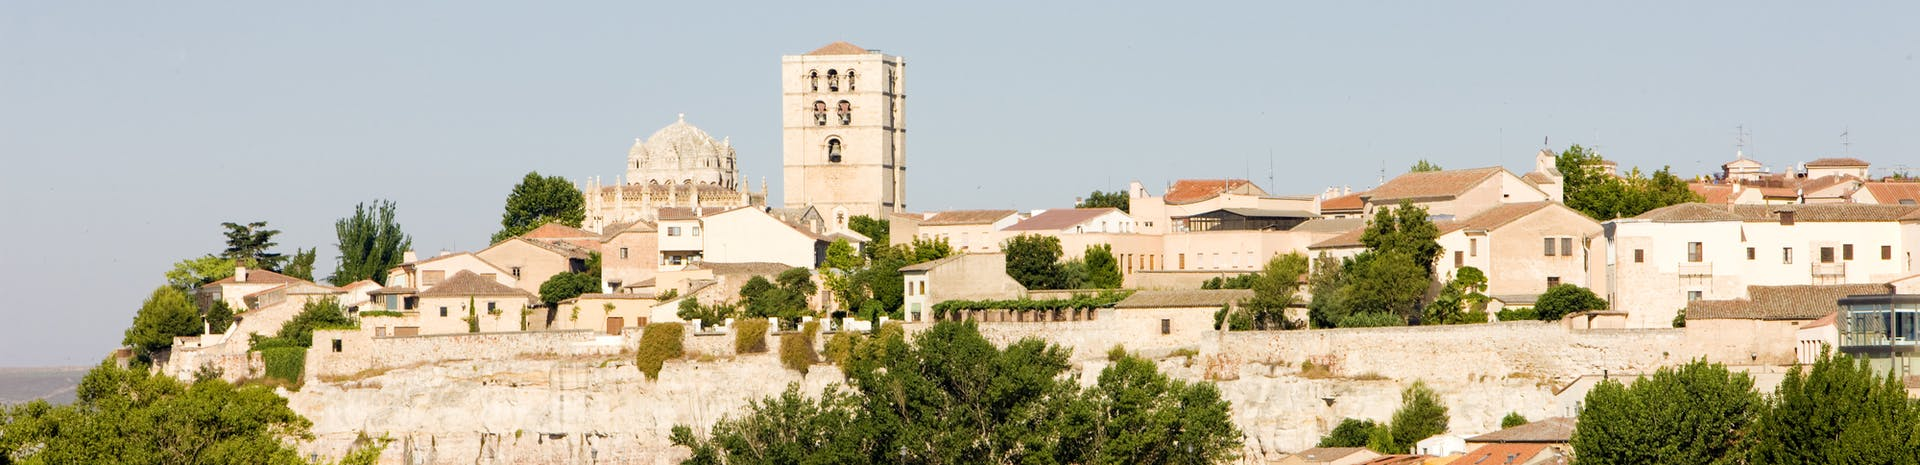 Picture of Zamora